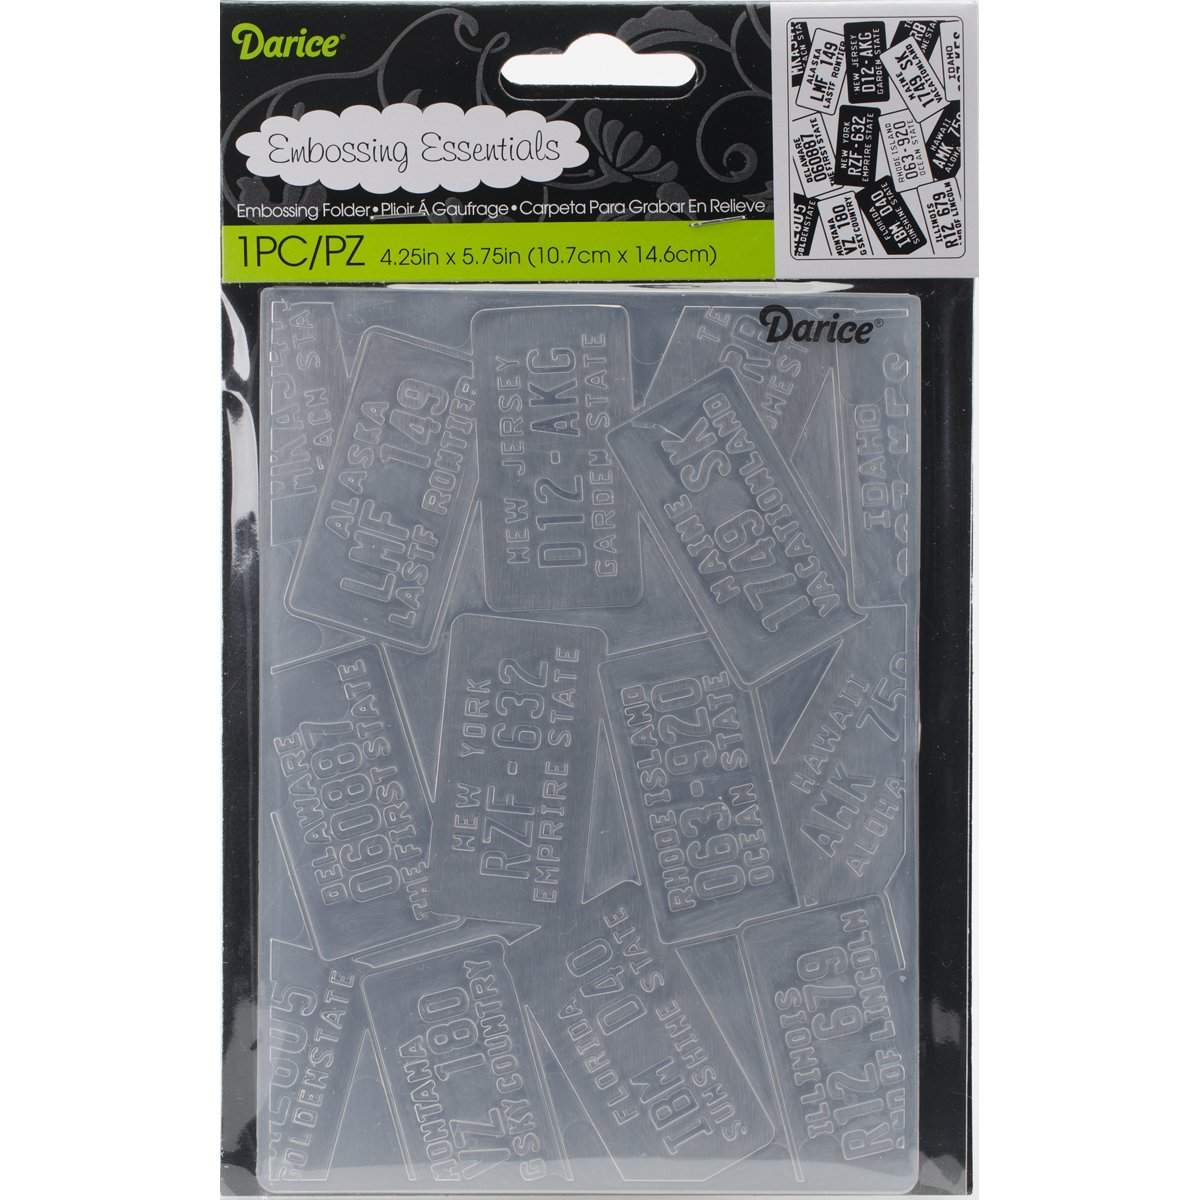 Darice Embossing Folder, 4.25 x 5.75, Dot and Circle EB12-201